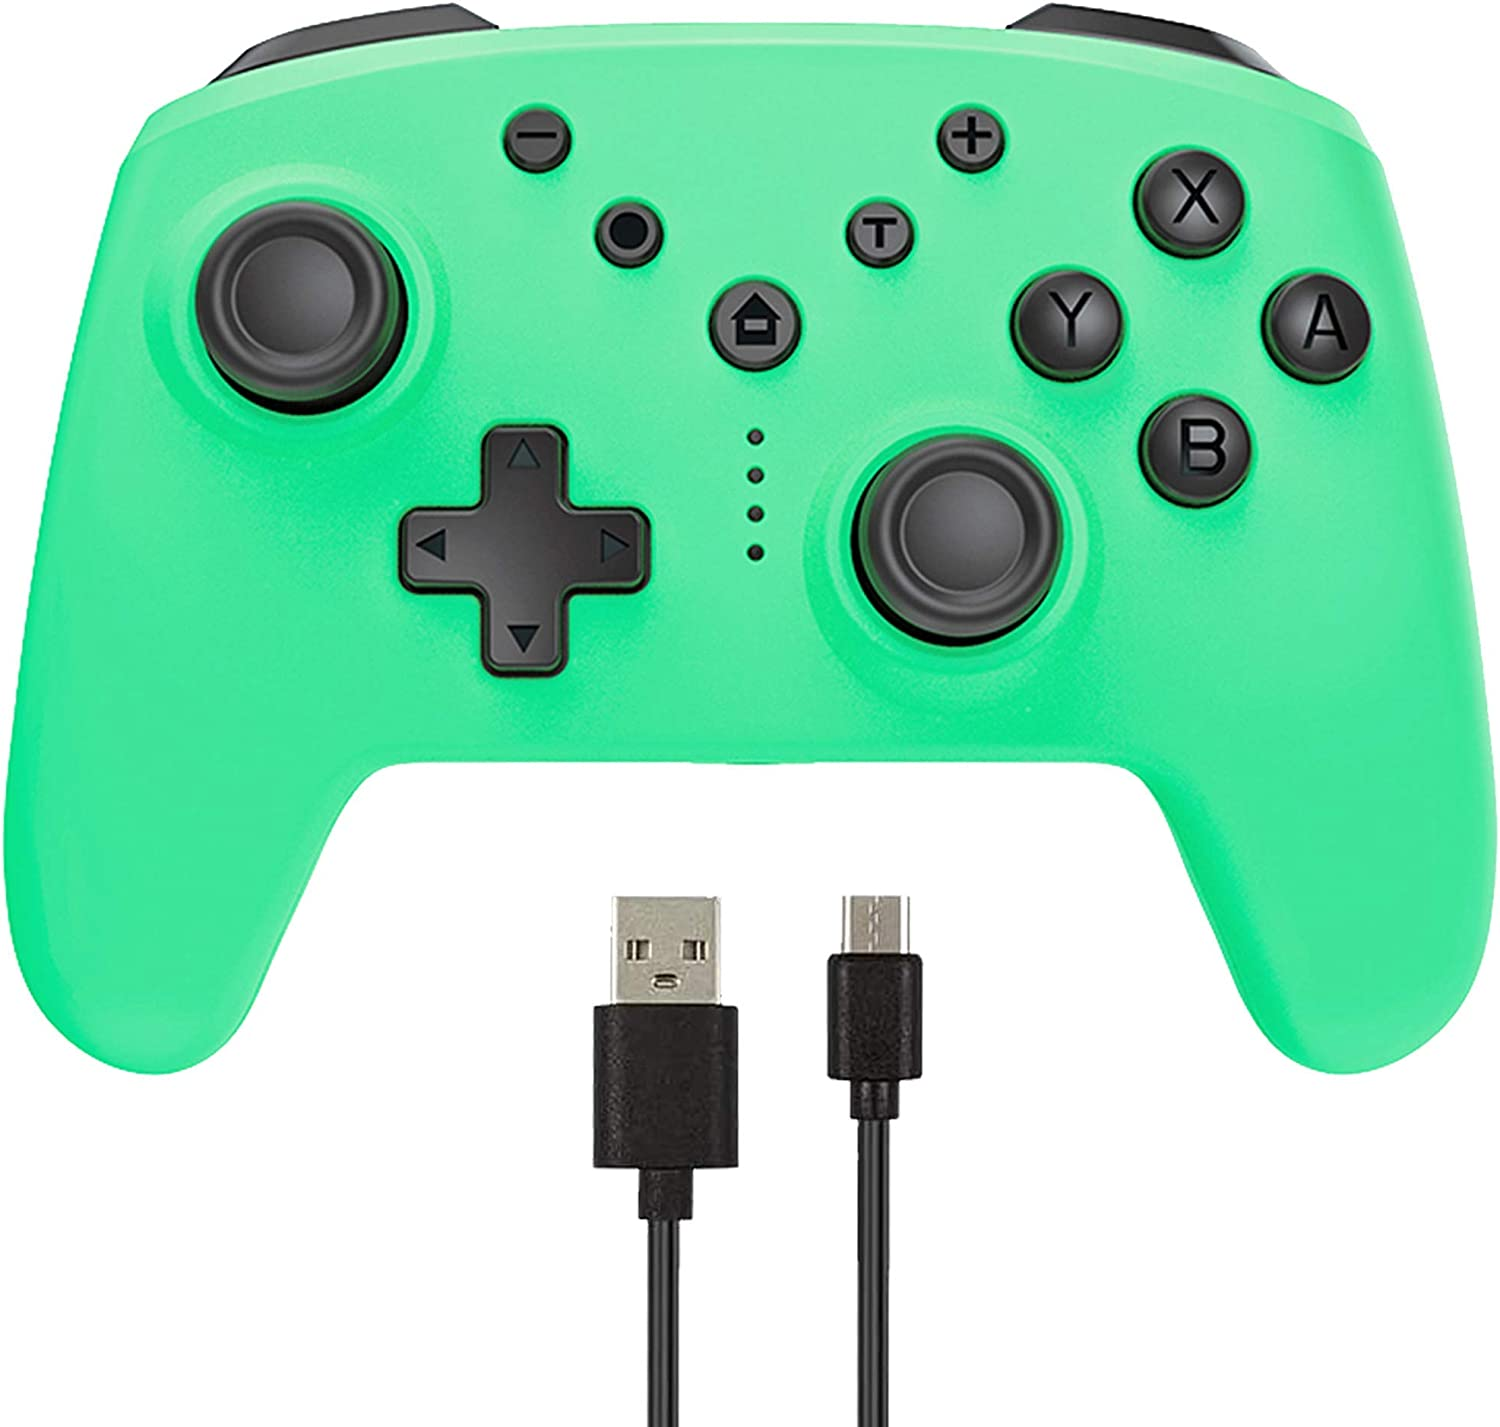 Arrocent Wireless Pro Controller for Switch/Switch Lite – Green